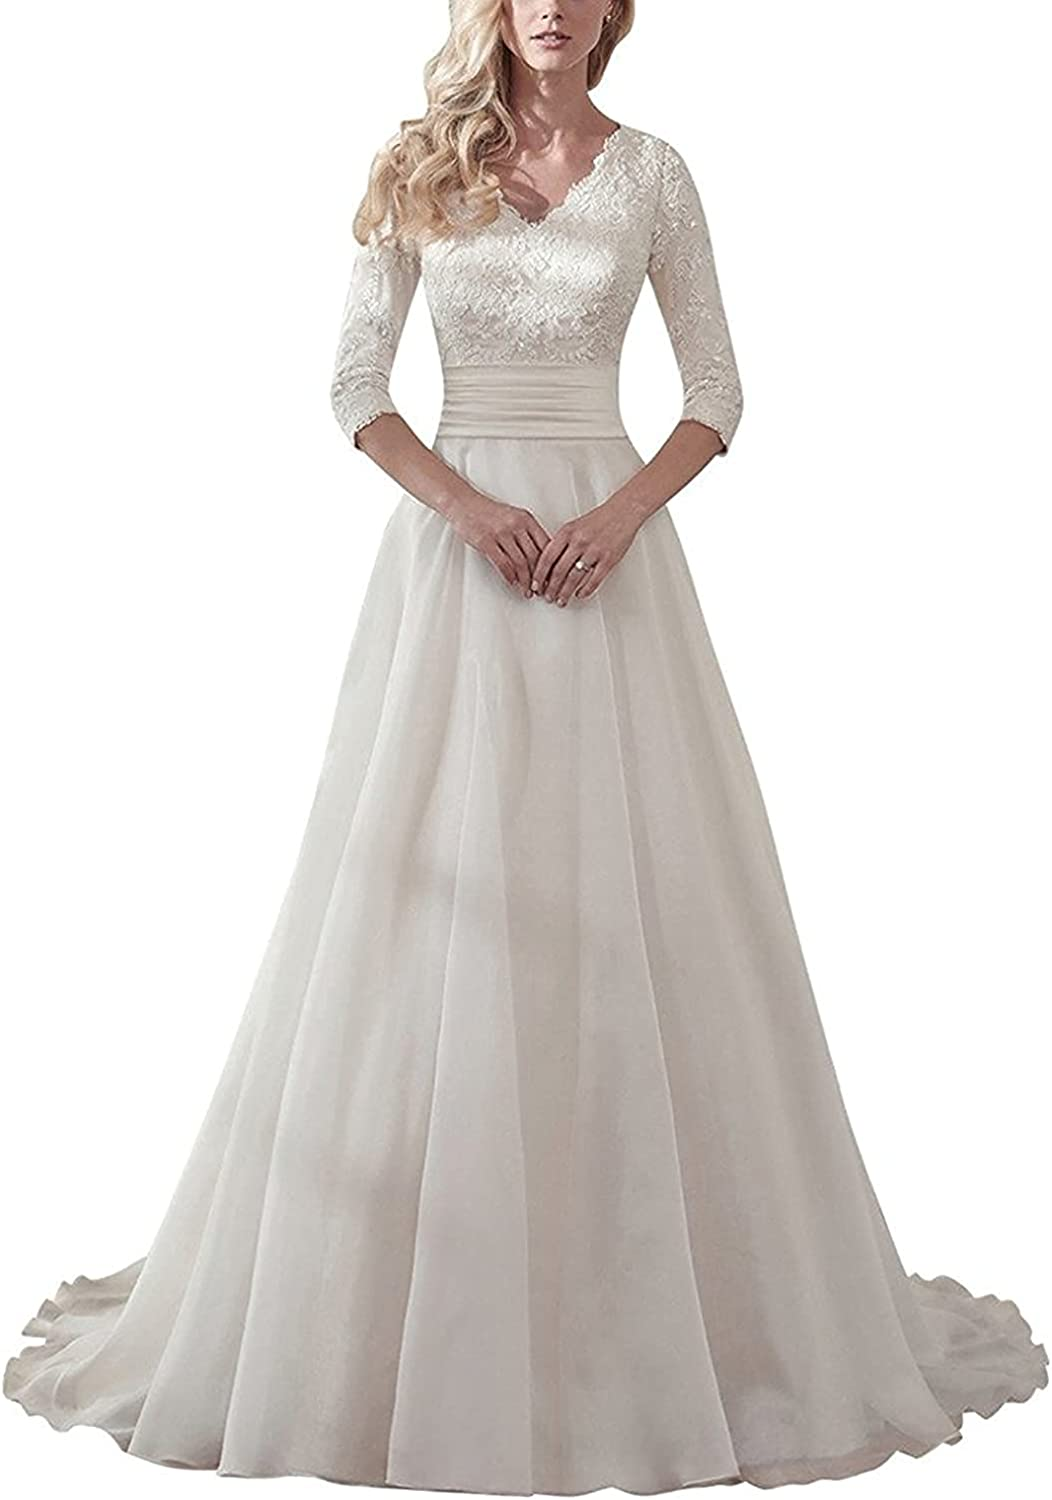 Denver Mall Lace Wedding Dress V Neck Aline Long New product type Gowns Bridal Dresses